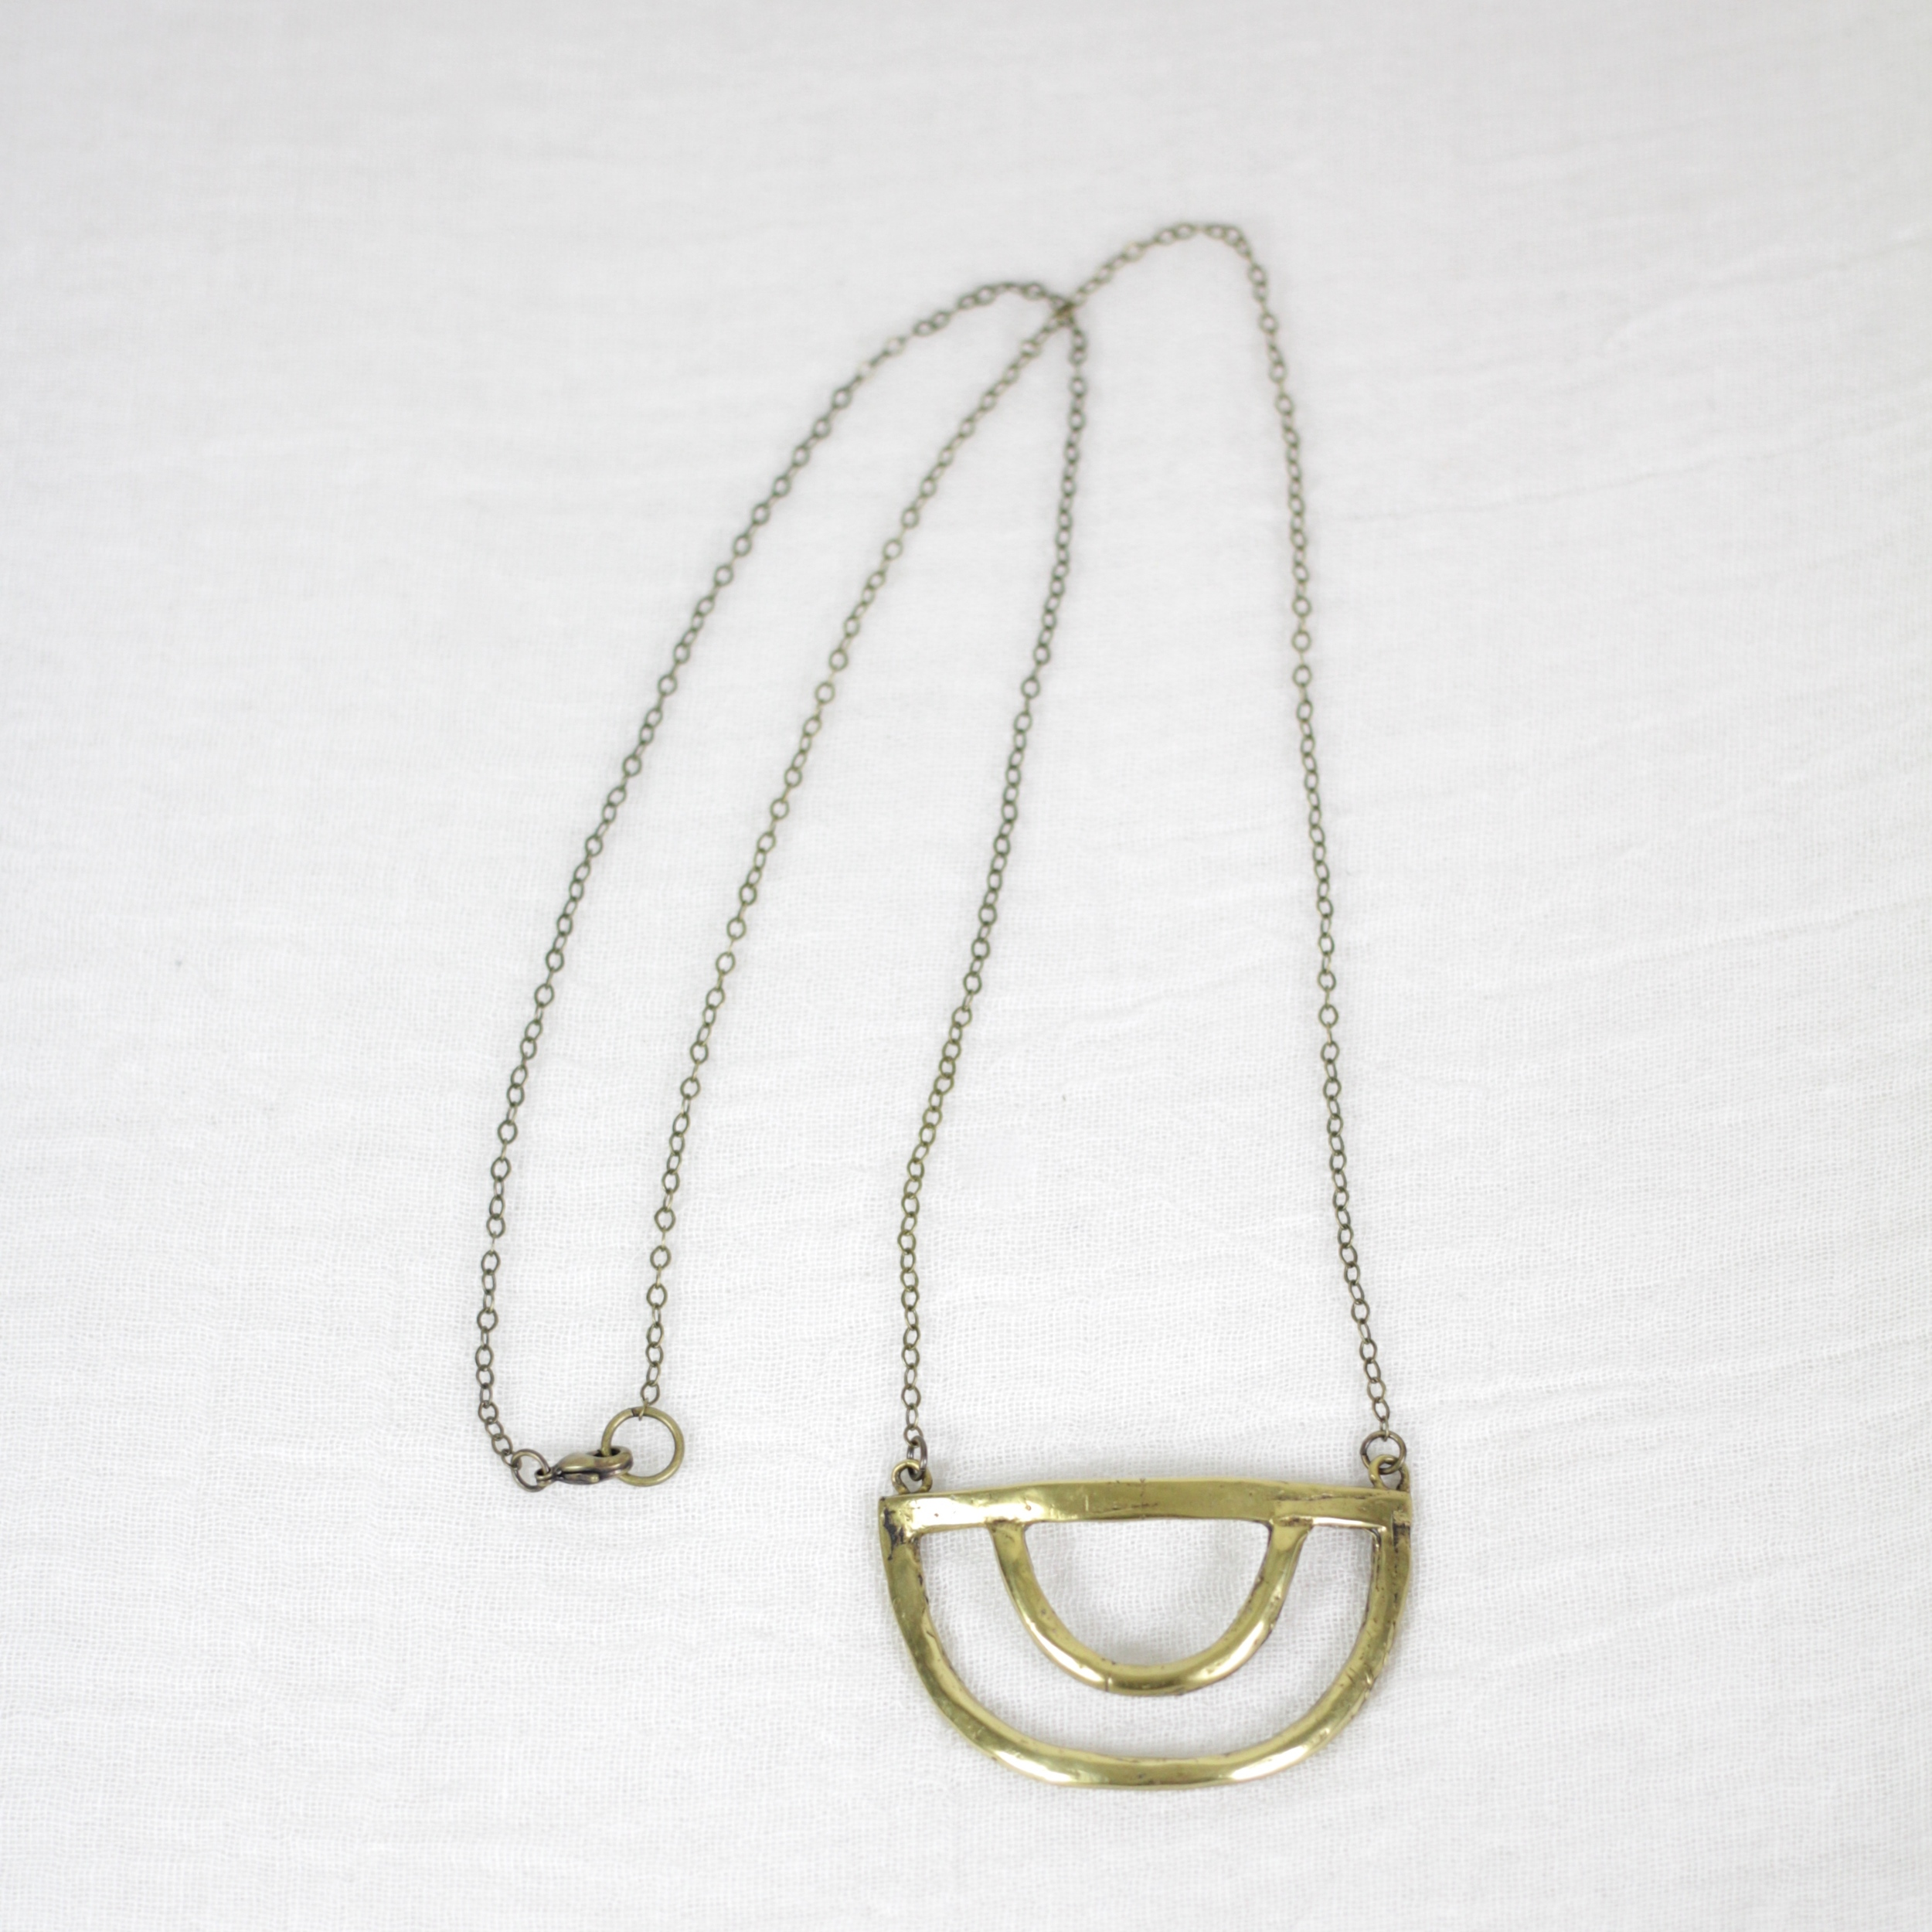 Arc Necklace | $110